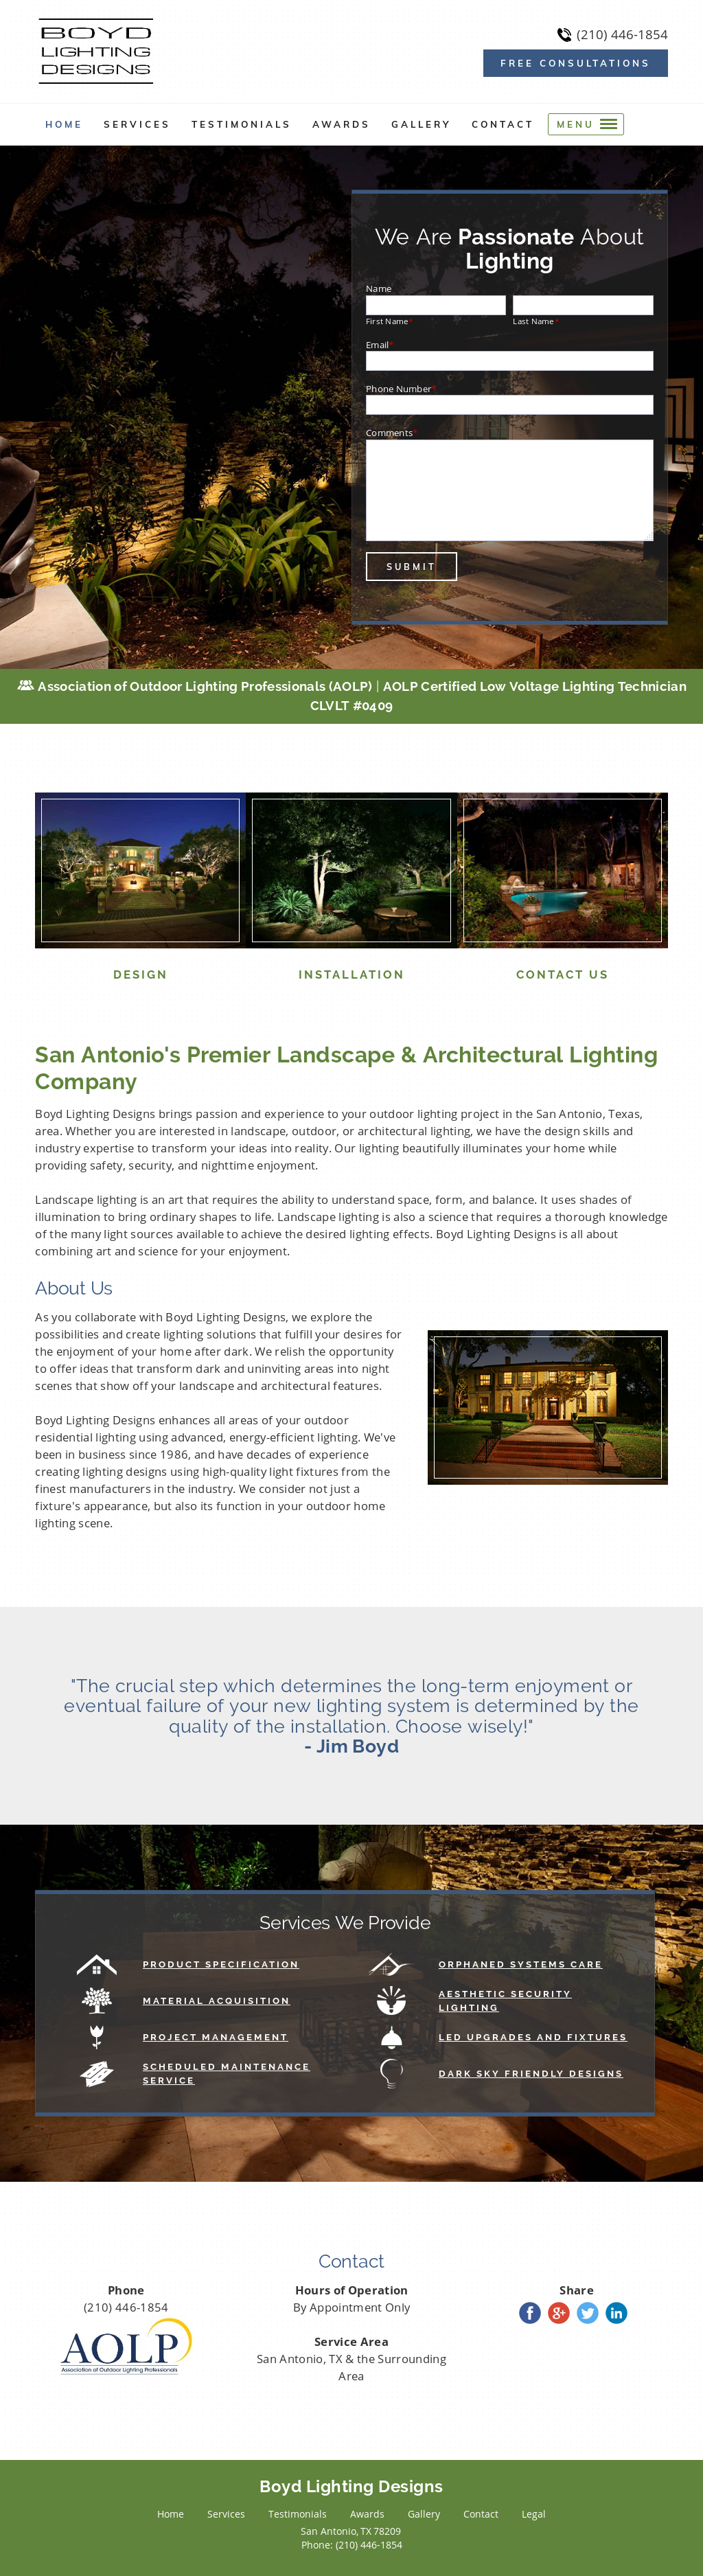 Boyd Lighting Designs Compeors Revenue And Employees